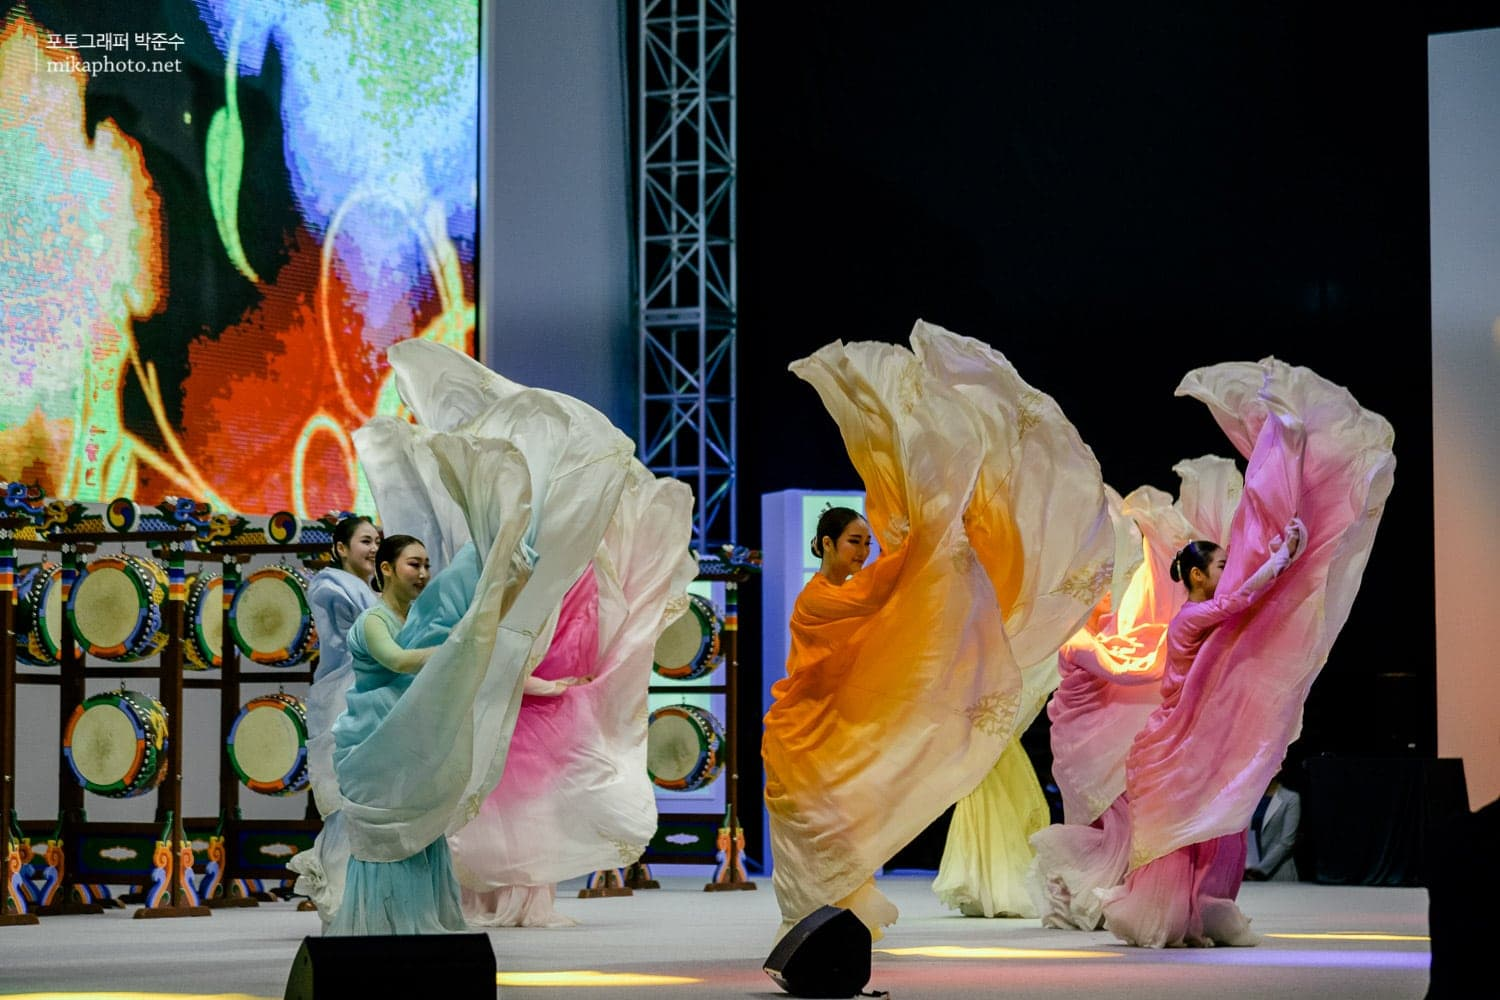 Traditional dance performance during the opening ceremony of ICN 2015 Seoul.